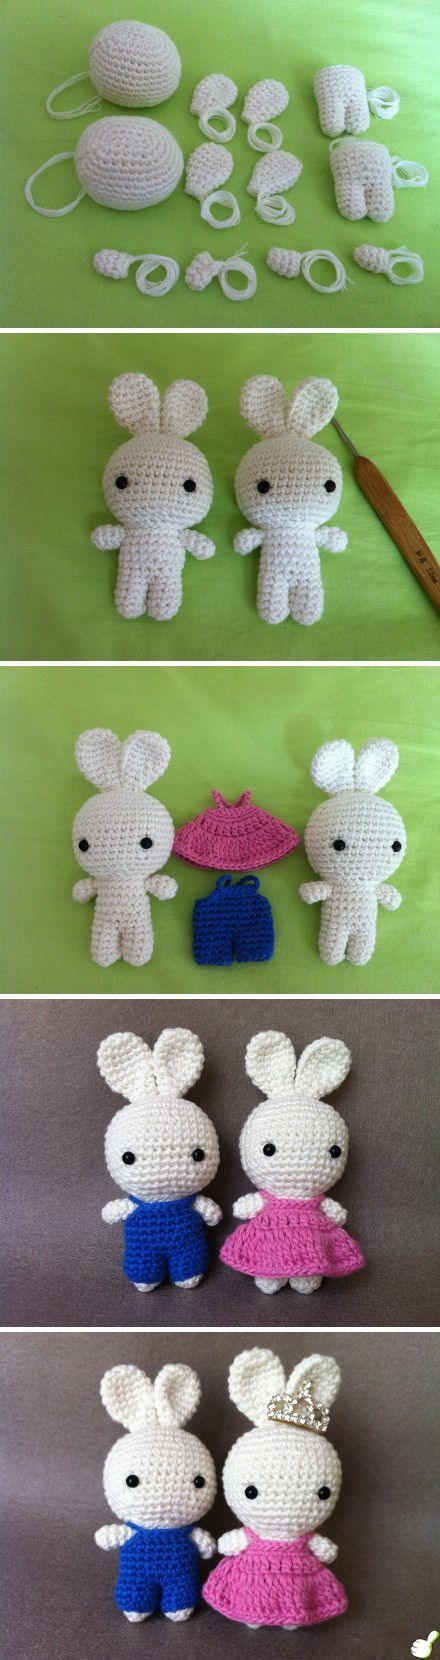 Rabbit Doll, fot the kids easter baskets!!! could give the little guy a tiny mario hat!